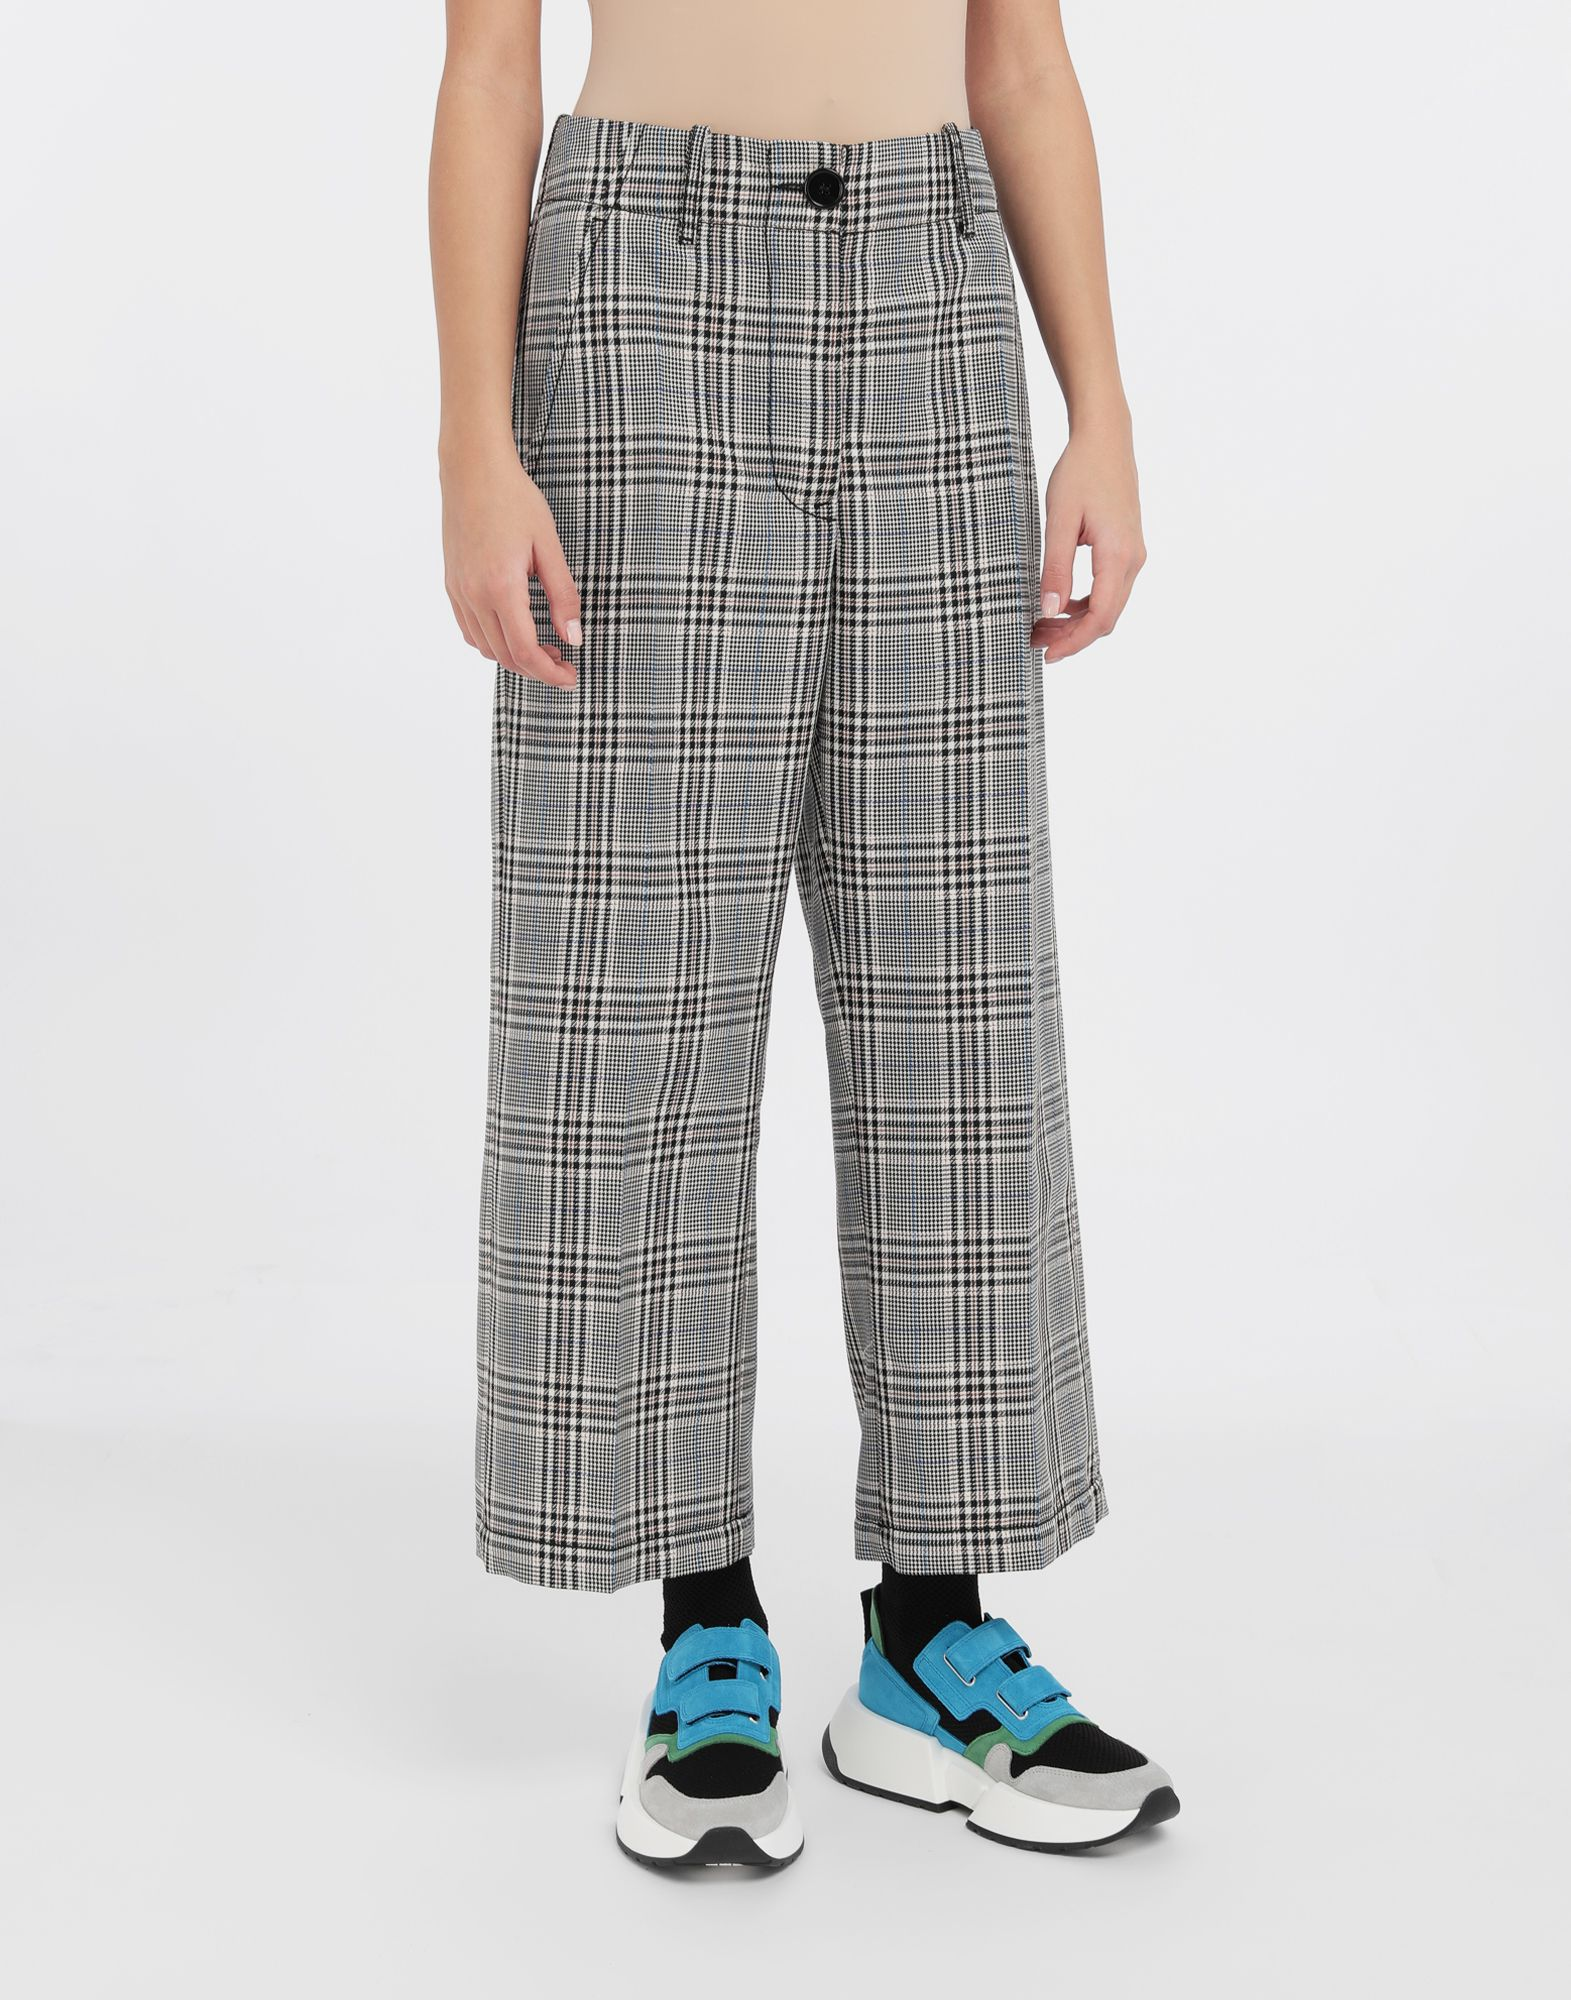 MM6 MAISON MARGIELA Checked wool-blend pants Casual pants Woman r